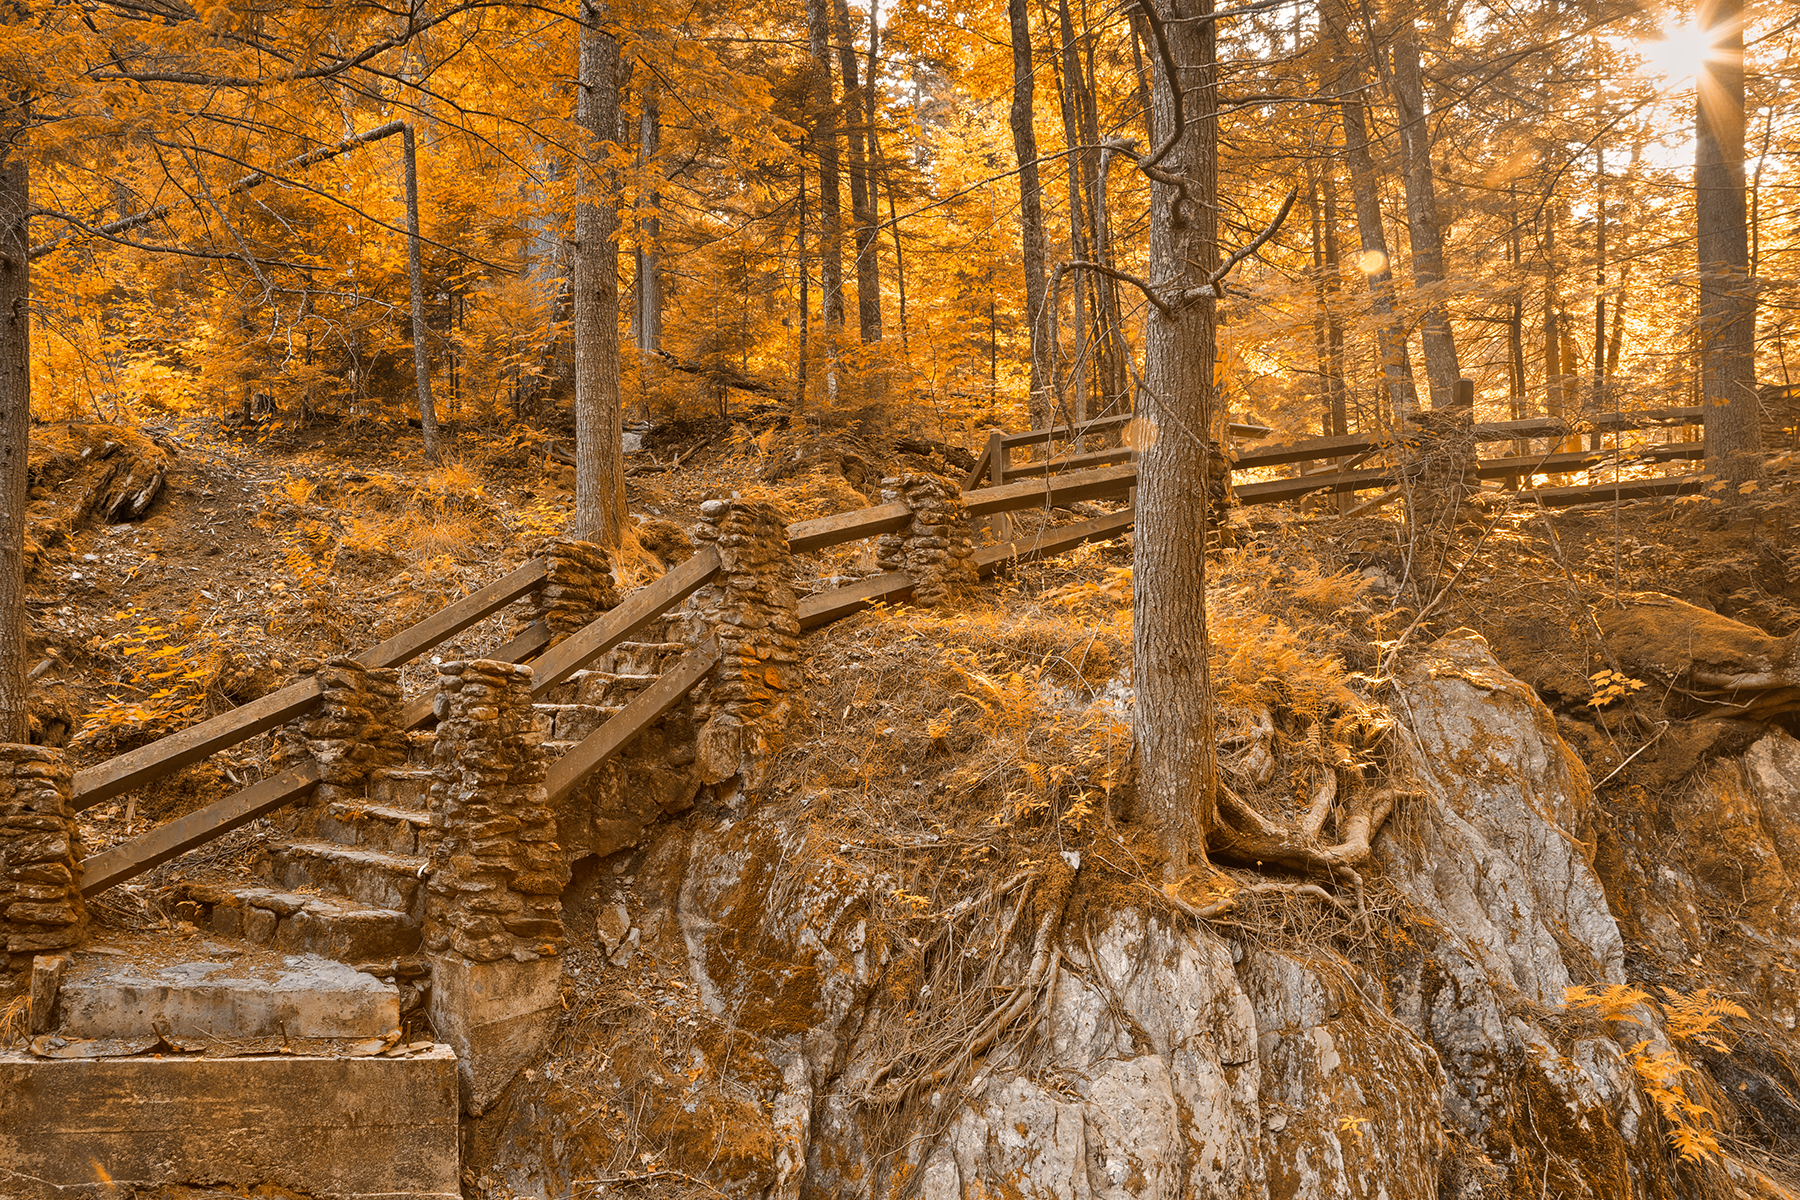 Stairway to neglected enlightenment - sepia gold hdr photo